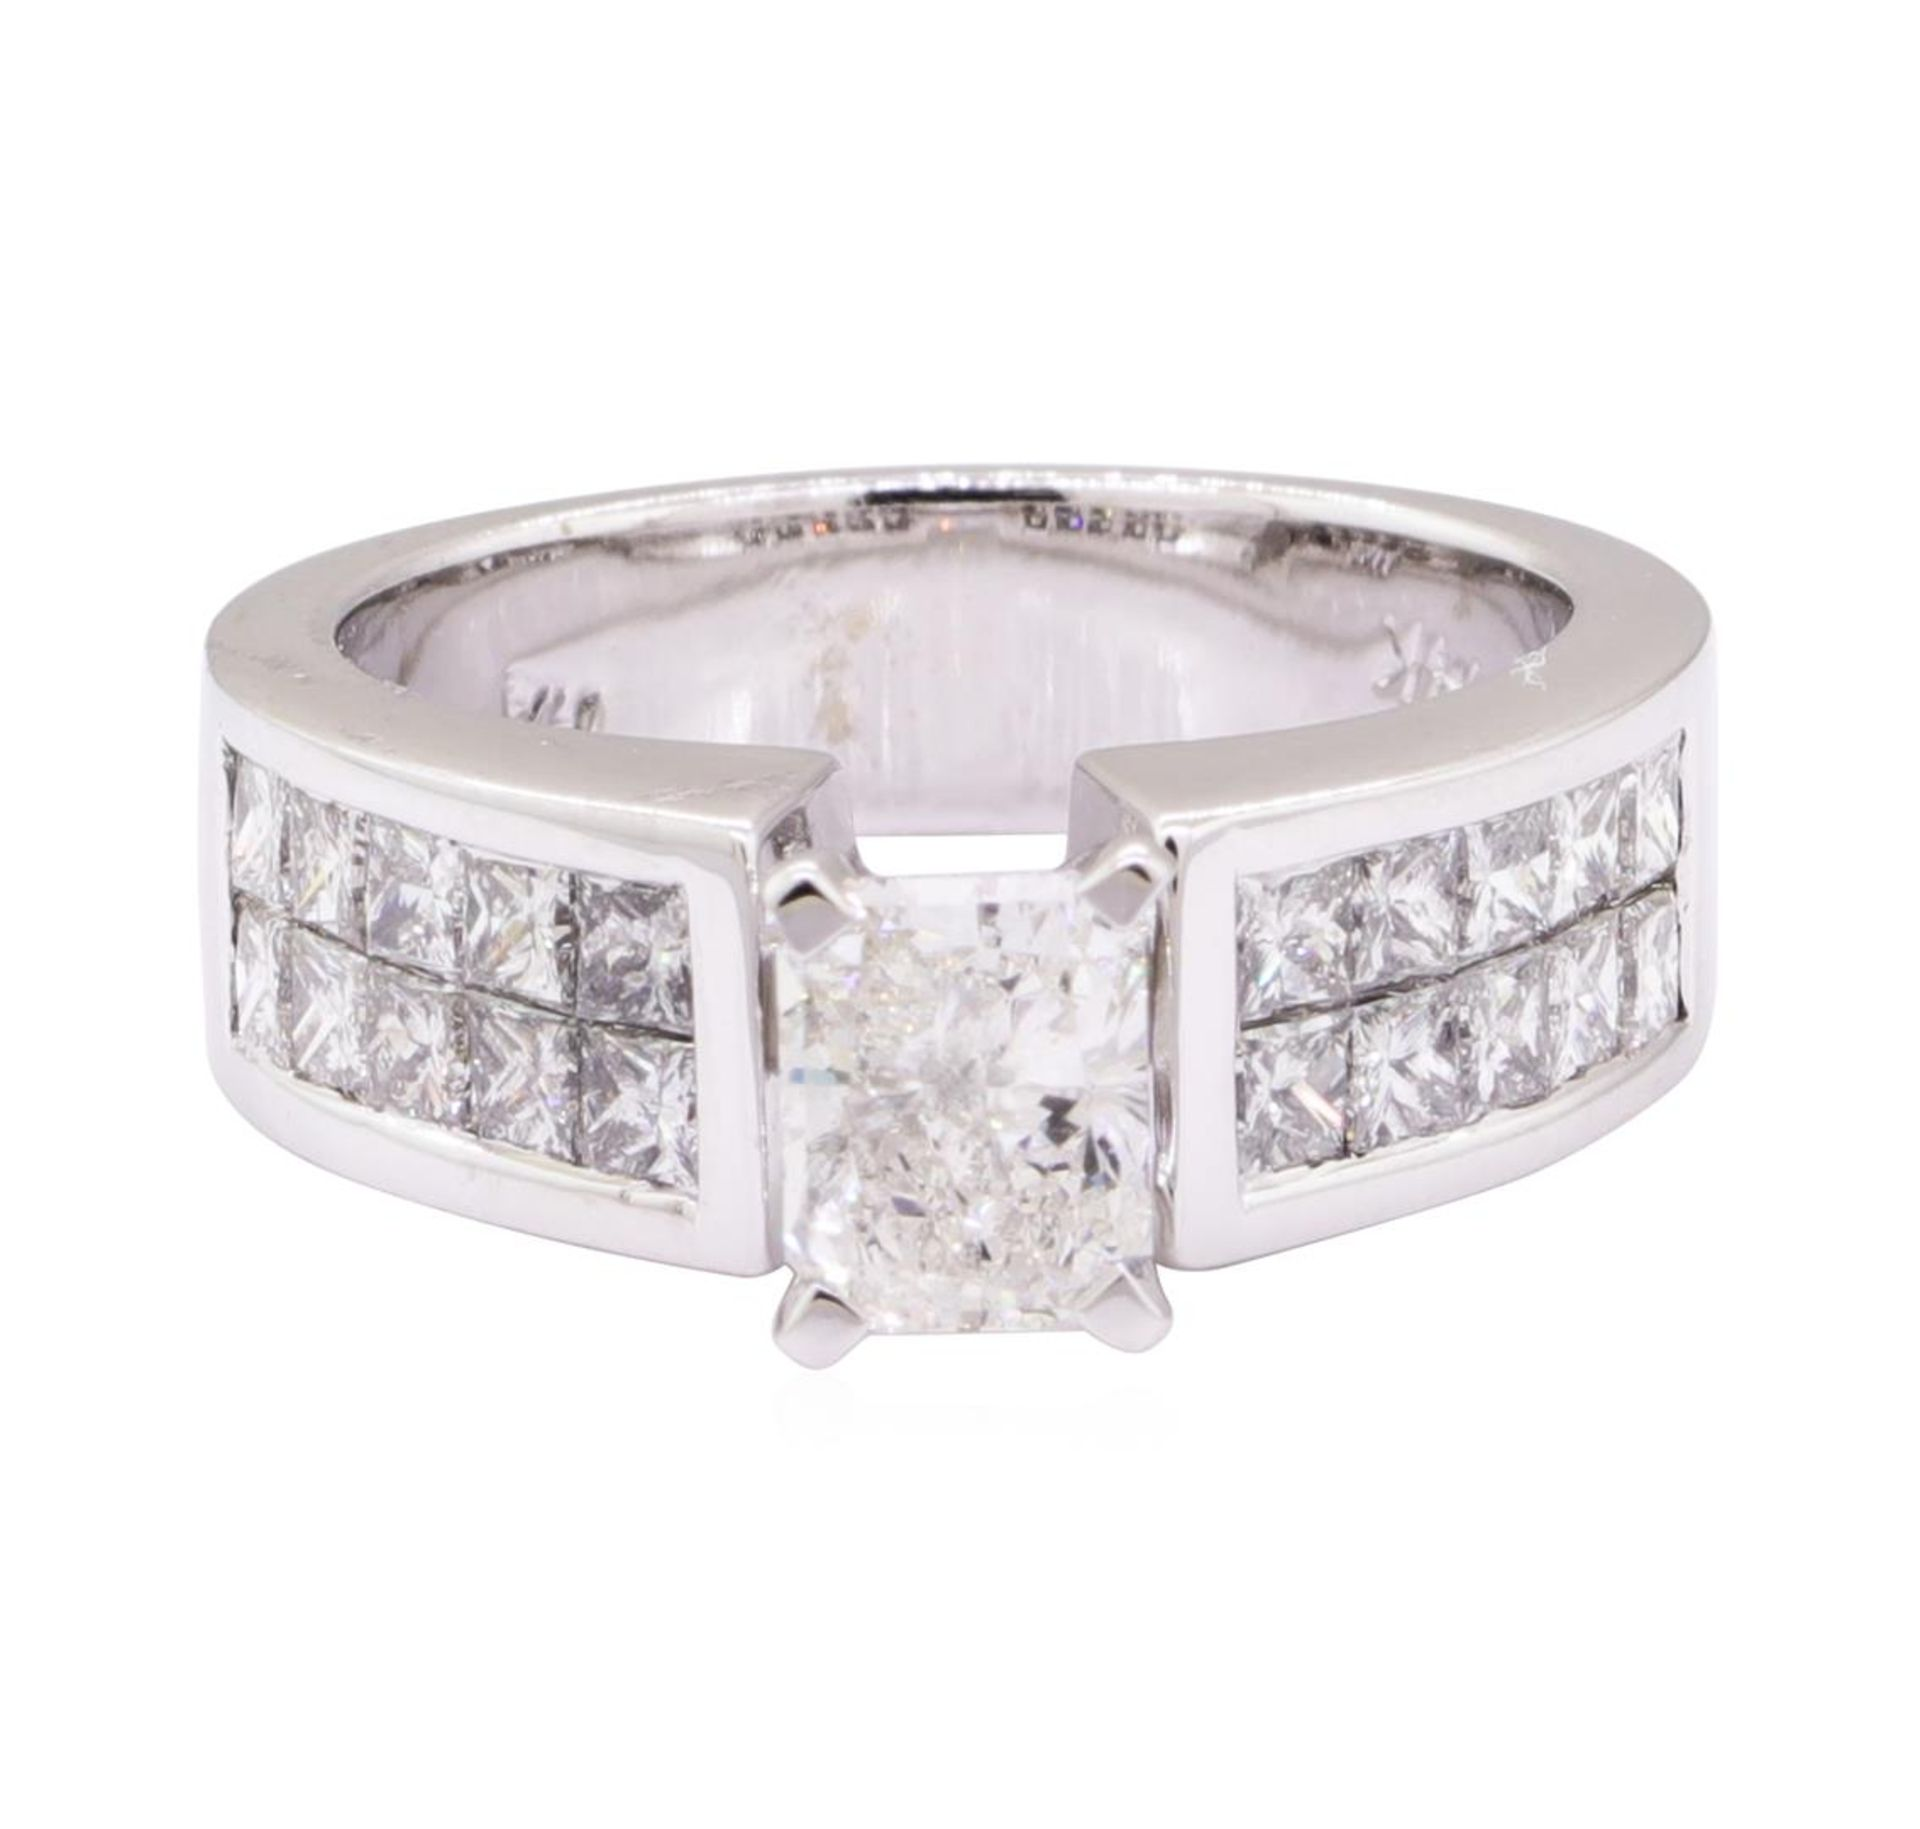 2.23 ctw Diamond Ring - 14KT White Gold - Image 2 of 5